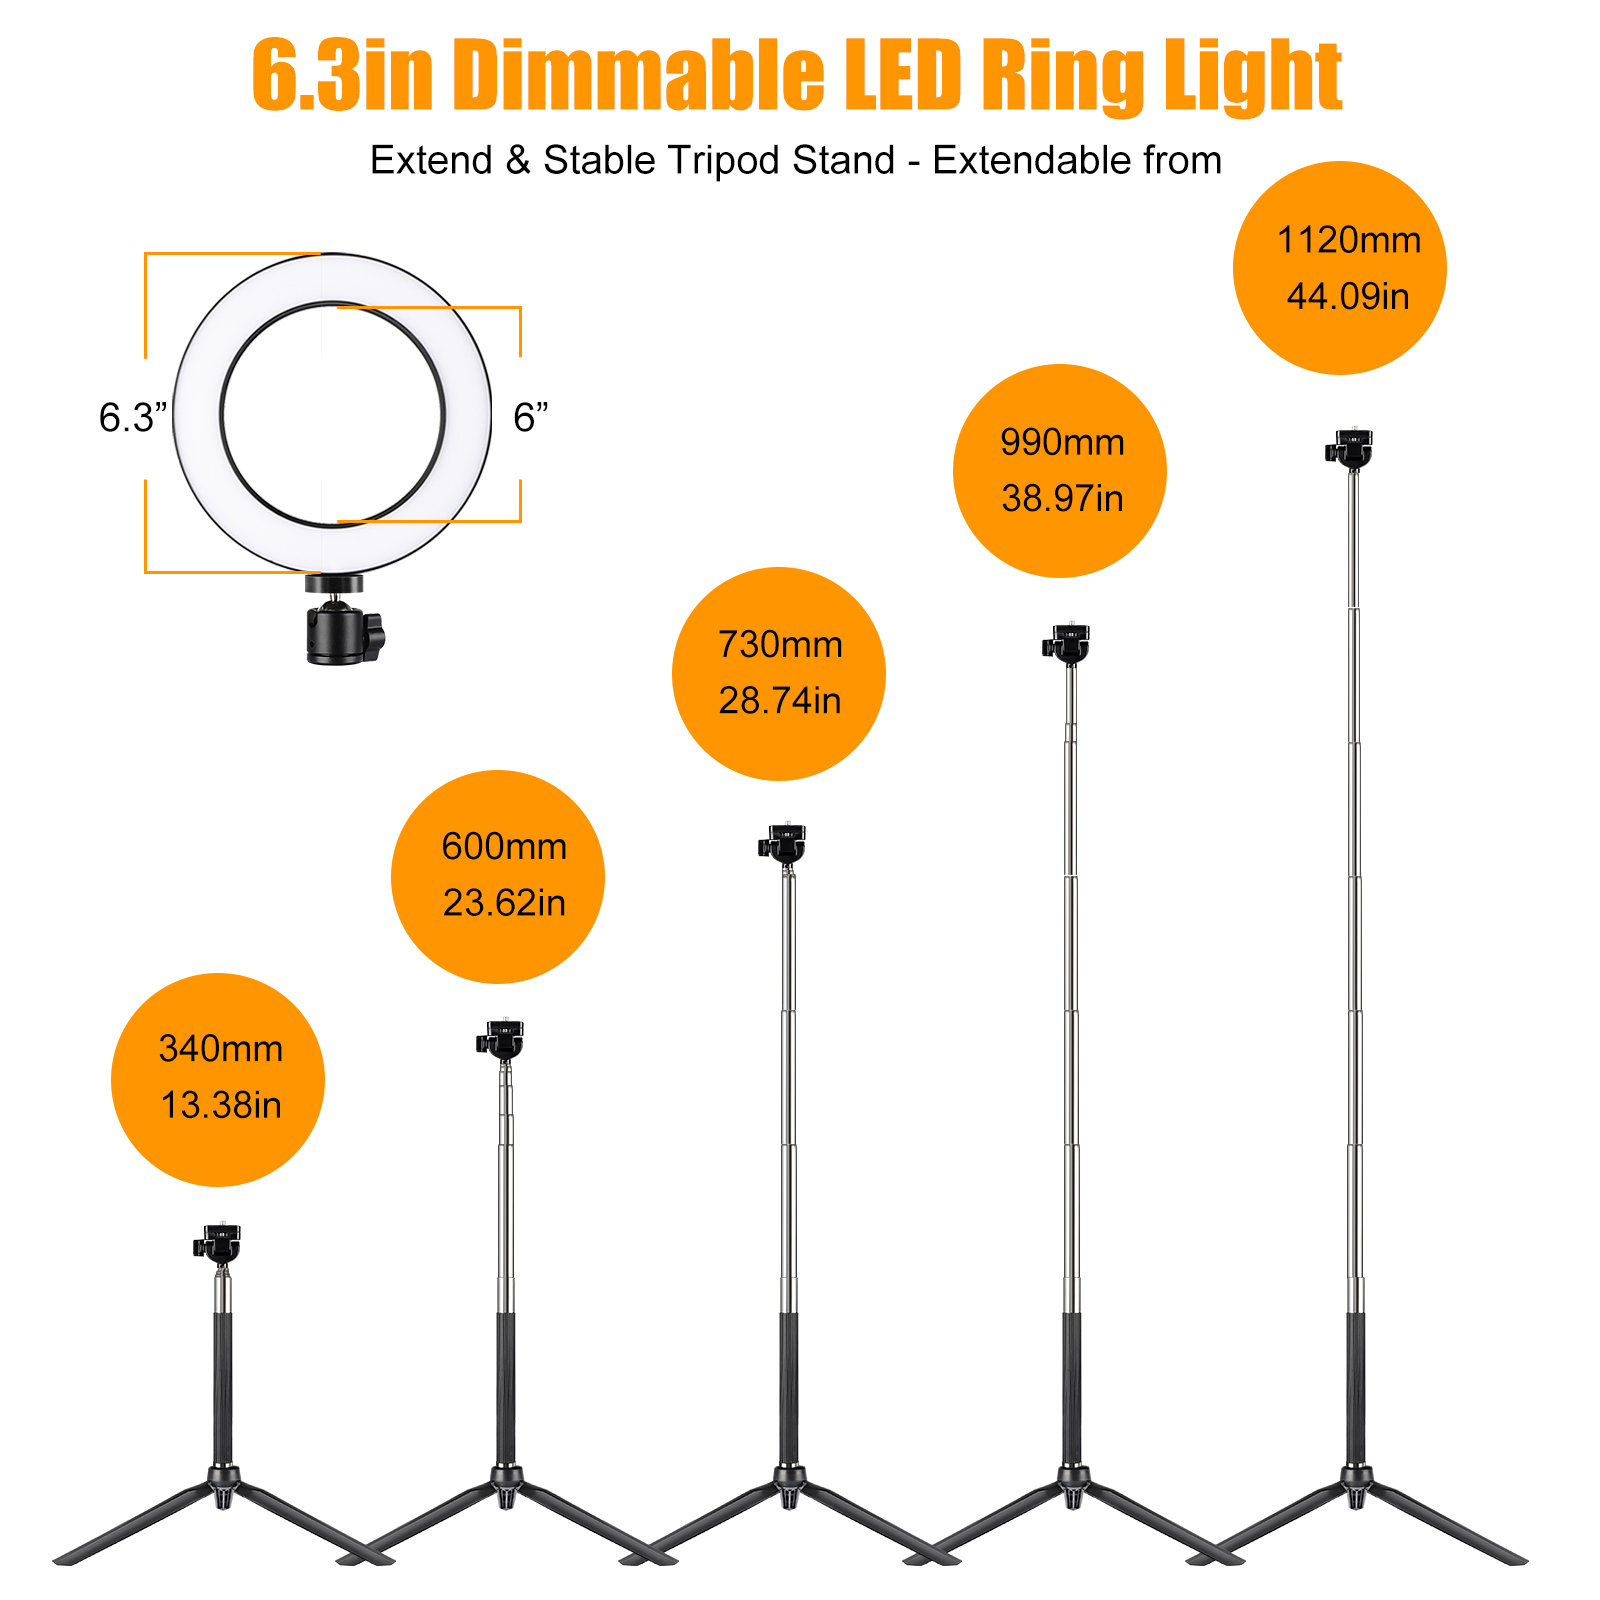 Remote Control Peaceip US Ring Light Kit-13in External 20W-5500k Dimmable LED Illuminator for YouTube Makeup Mirror Selfie Portrait with 71in Light Stand Phone Clip